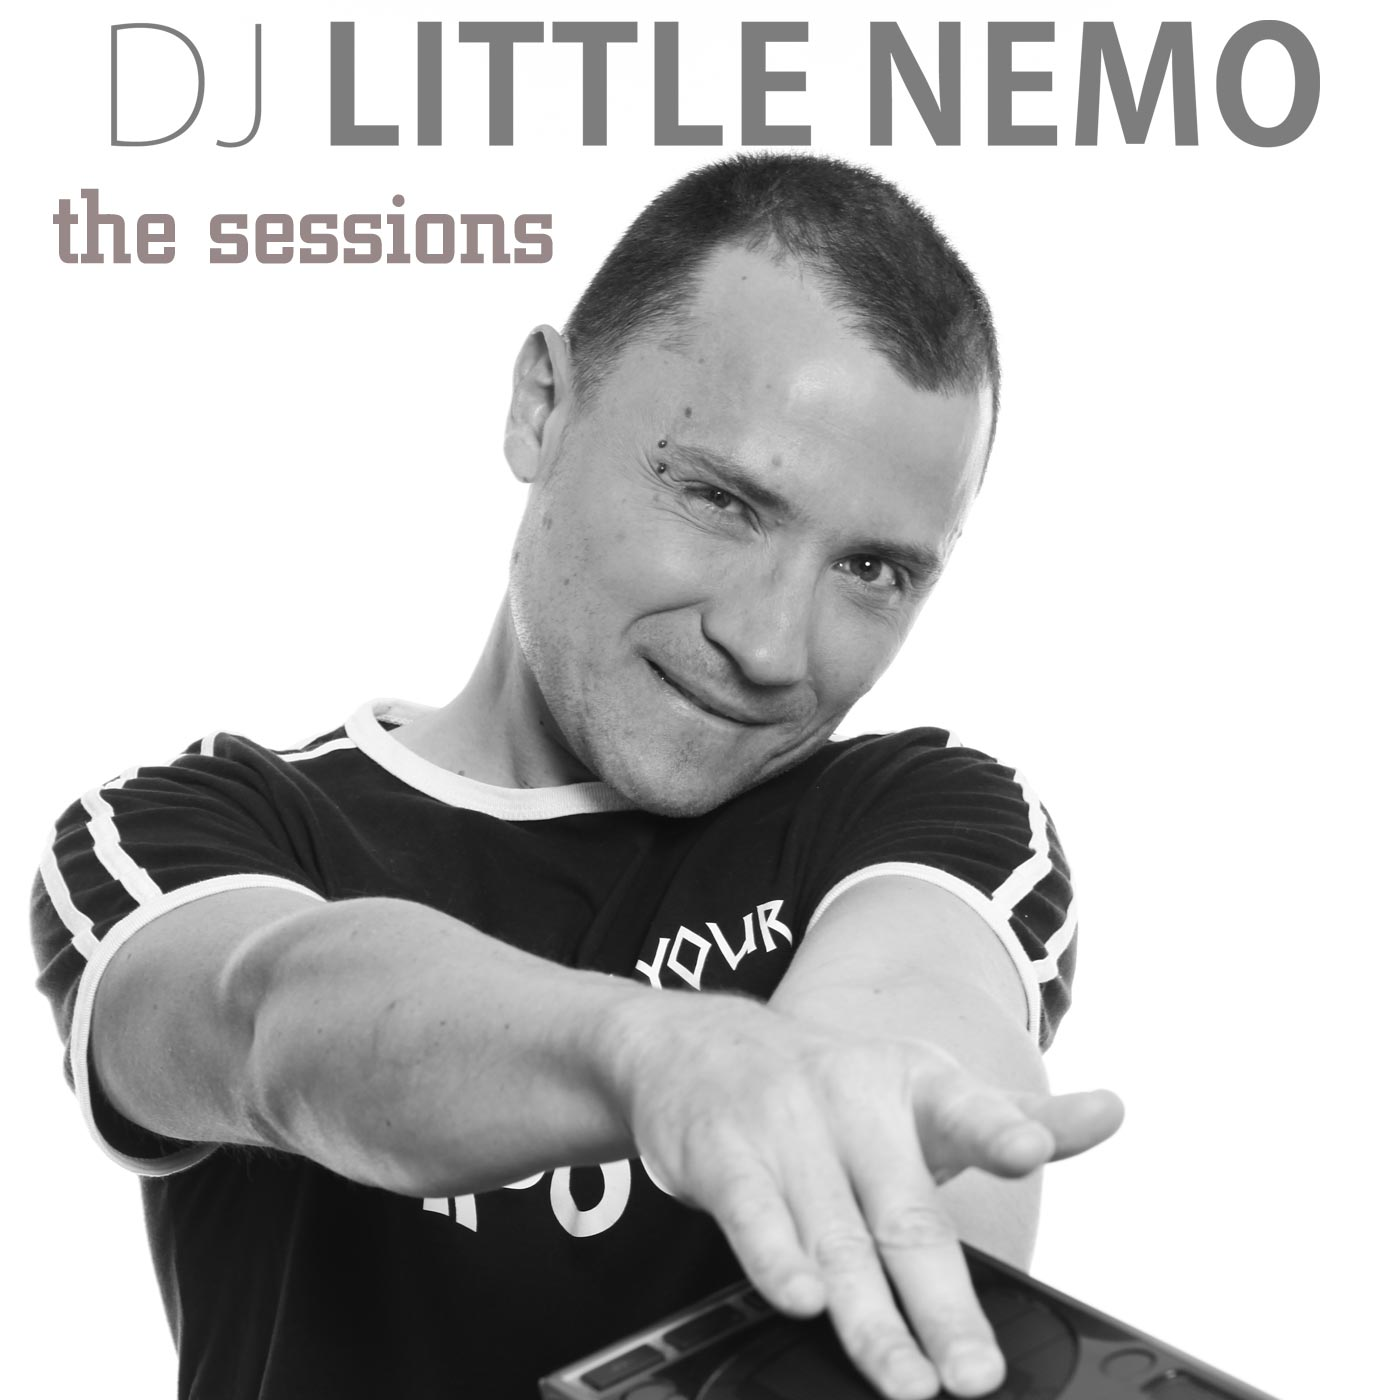 The Sessions by DJ Little Nemo